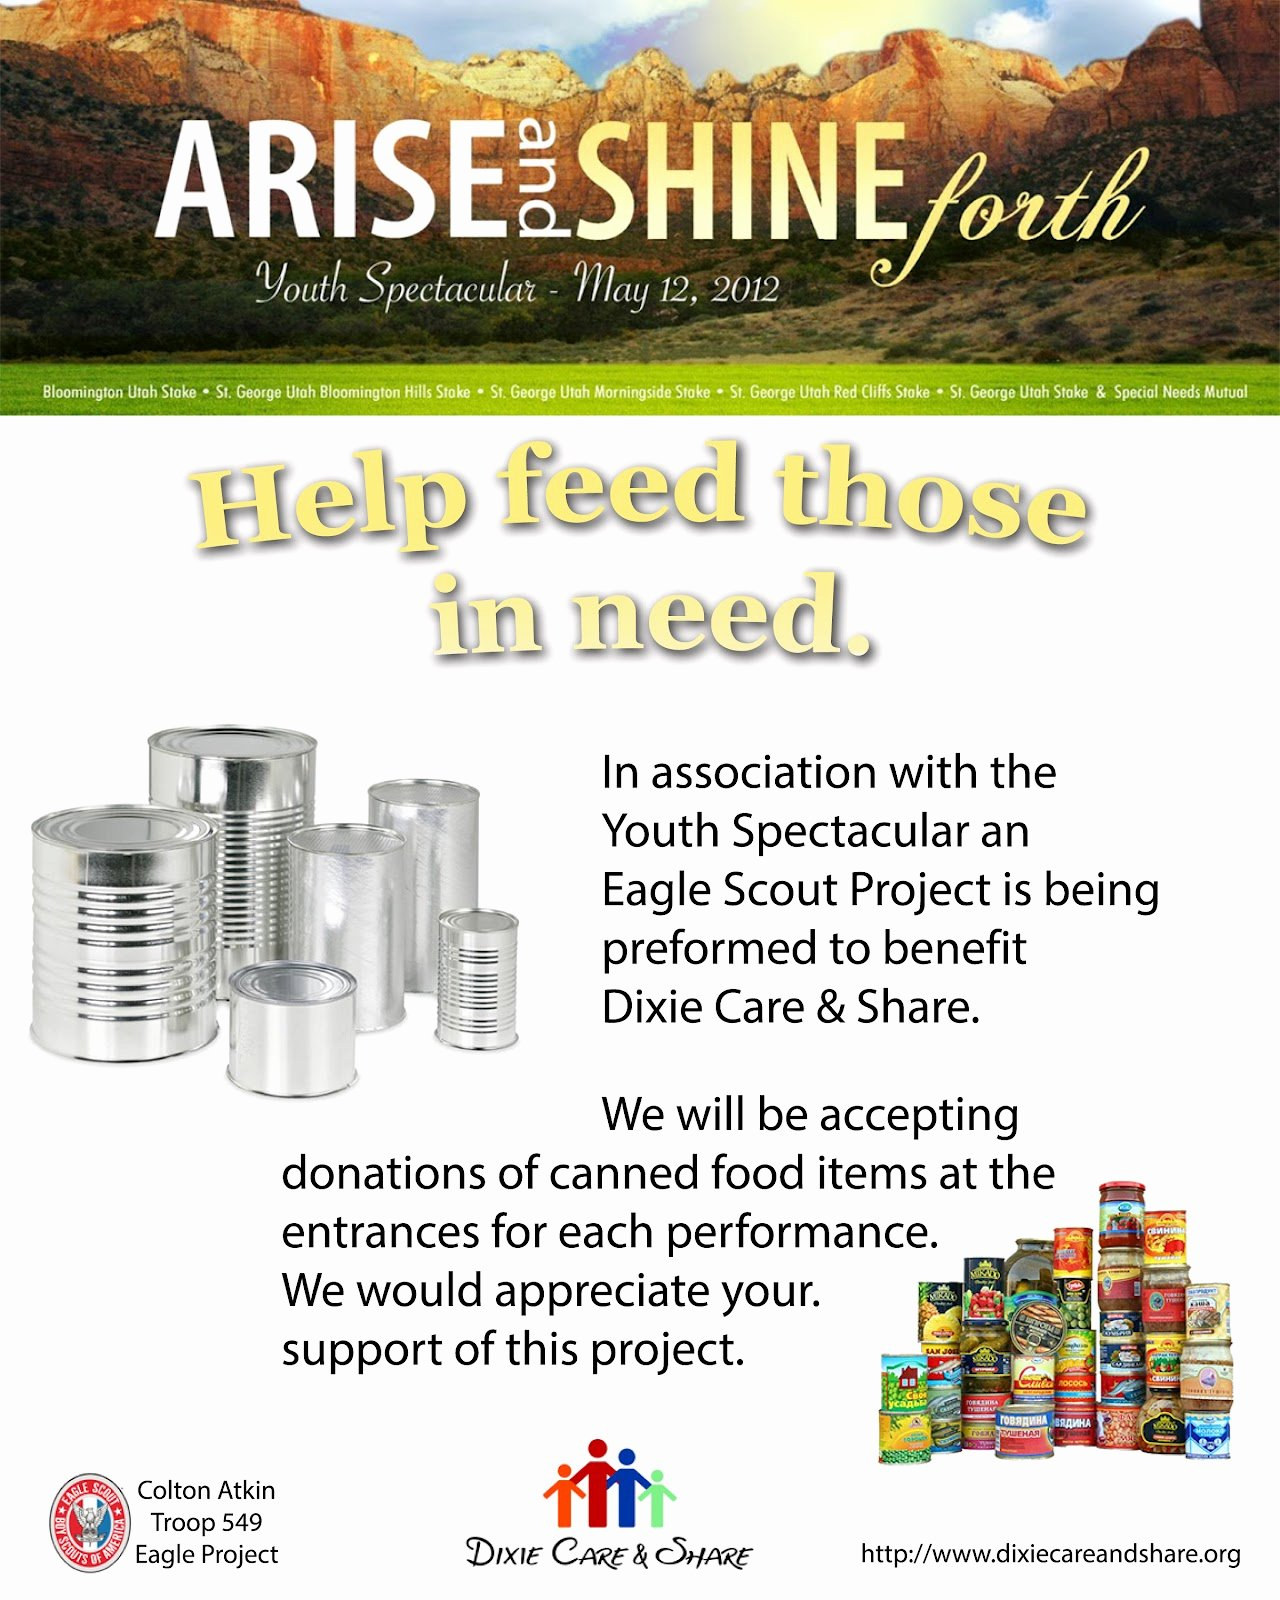 Canned Food Drive Flyer Template Luxury Arise & Shine forth 2012 Youth Spectacular Updated Flyer for Canned Food Drive